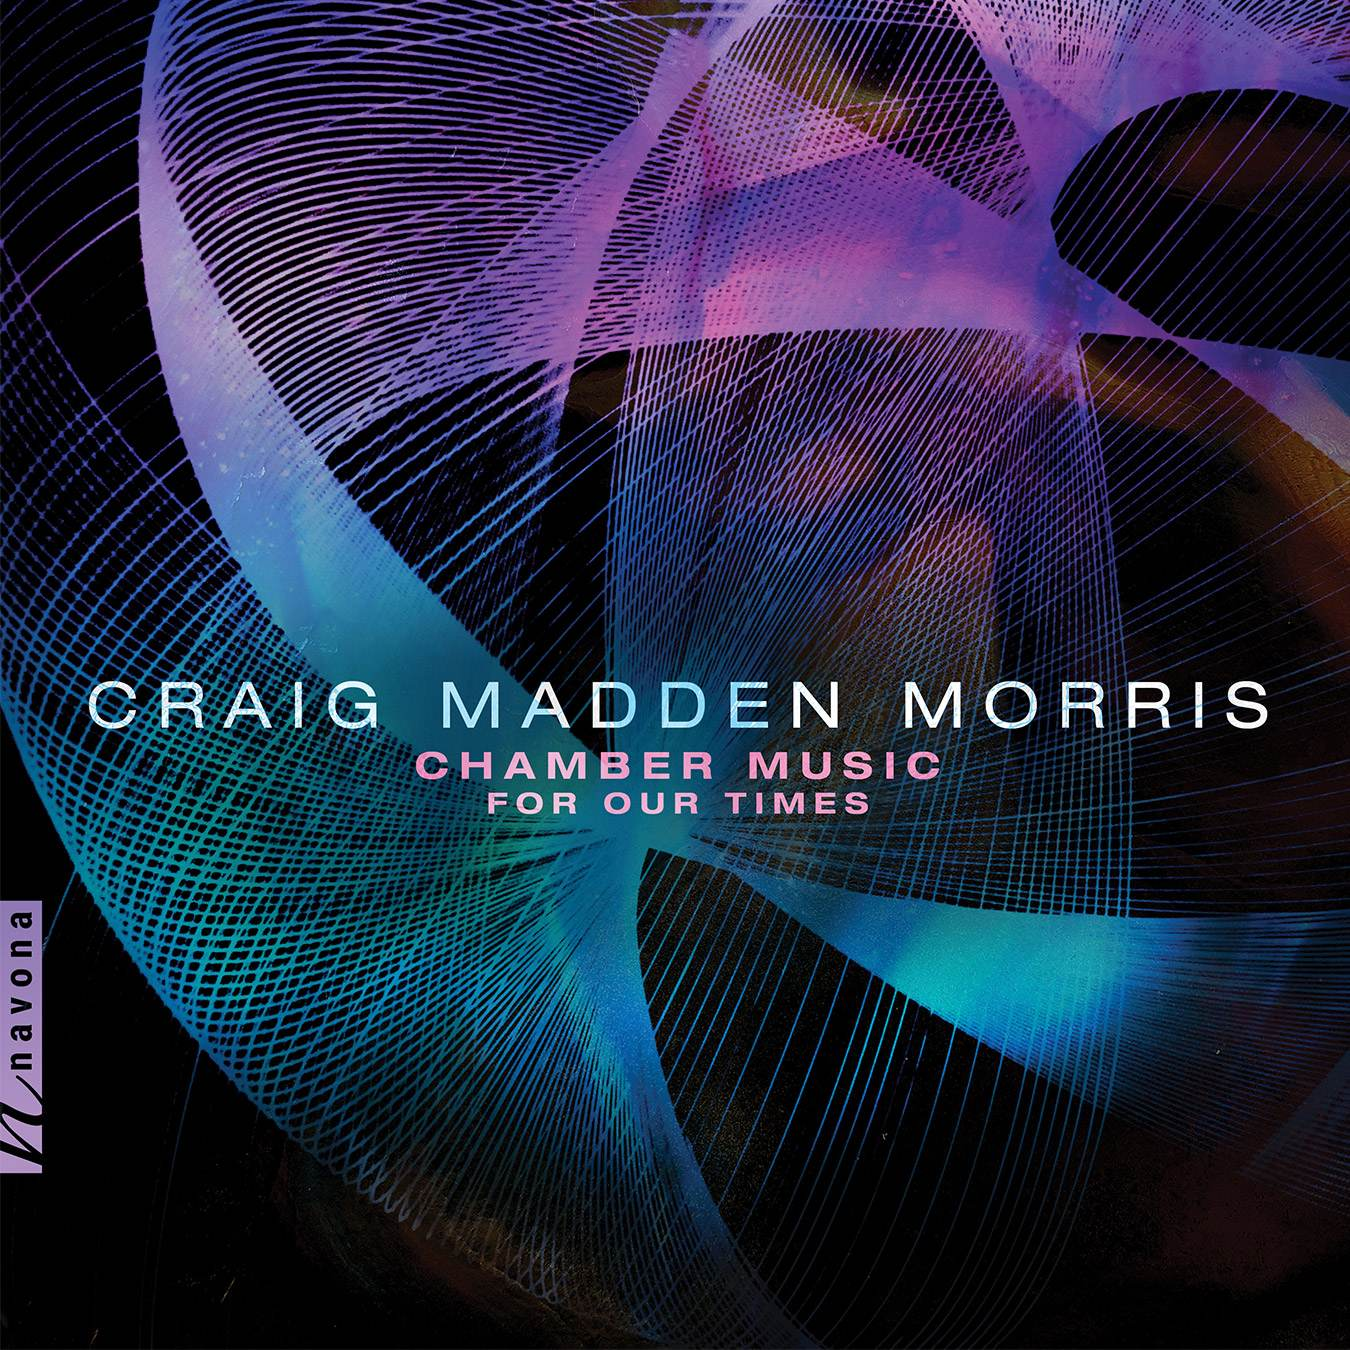 Chamber Music for Our Times-Craig Madden Morris - Album Cover